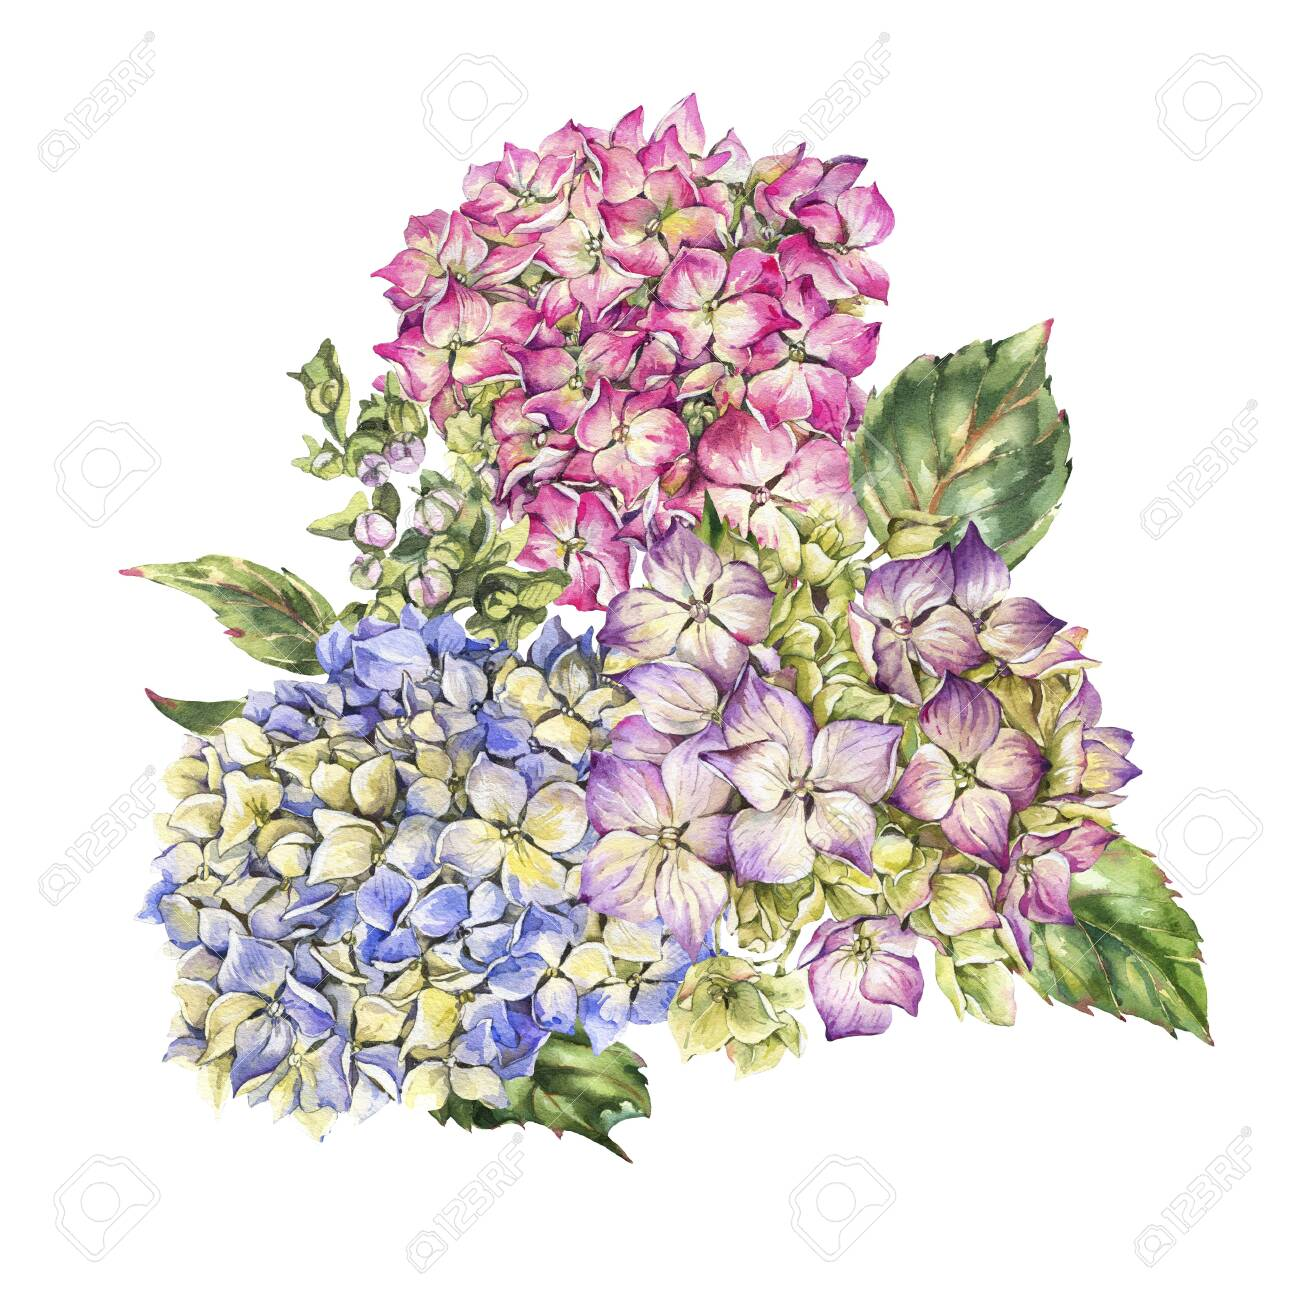 Watercolor blooming hydrangea greeting card, leaves, buds. Natural botanical floral collection isolated on white background, Summer Flowers - 131415362